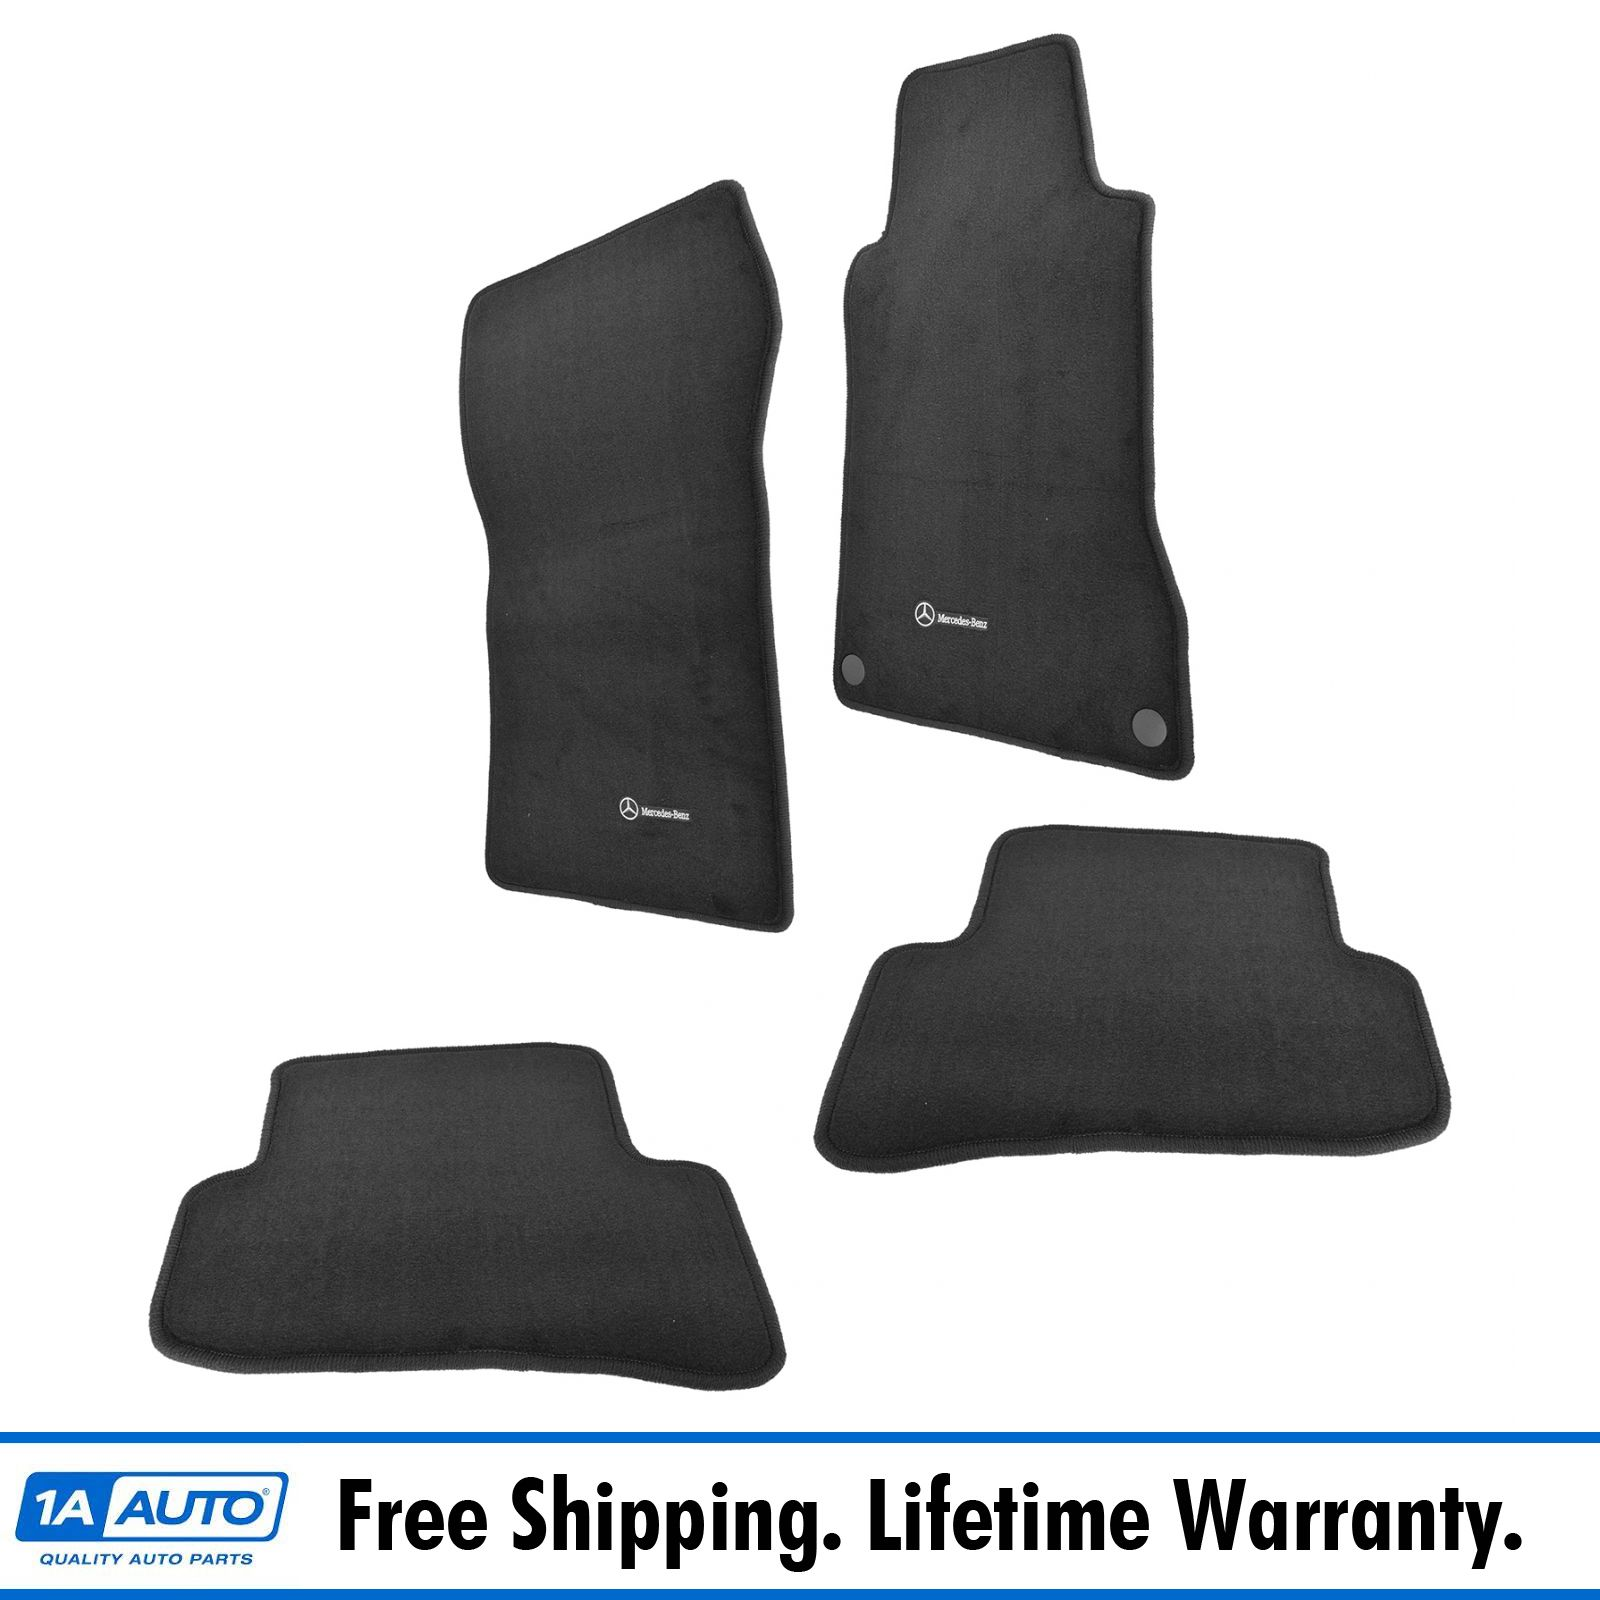 c benz custom mats floor tailored class floors rubber products mercedes for made